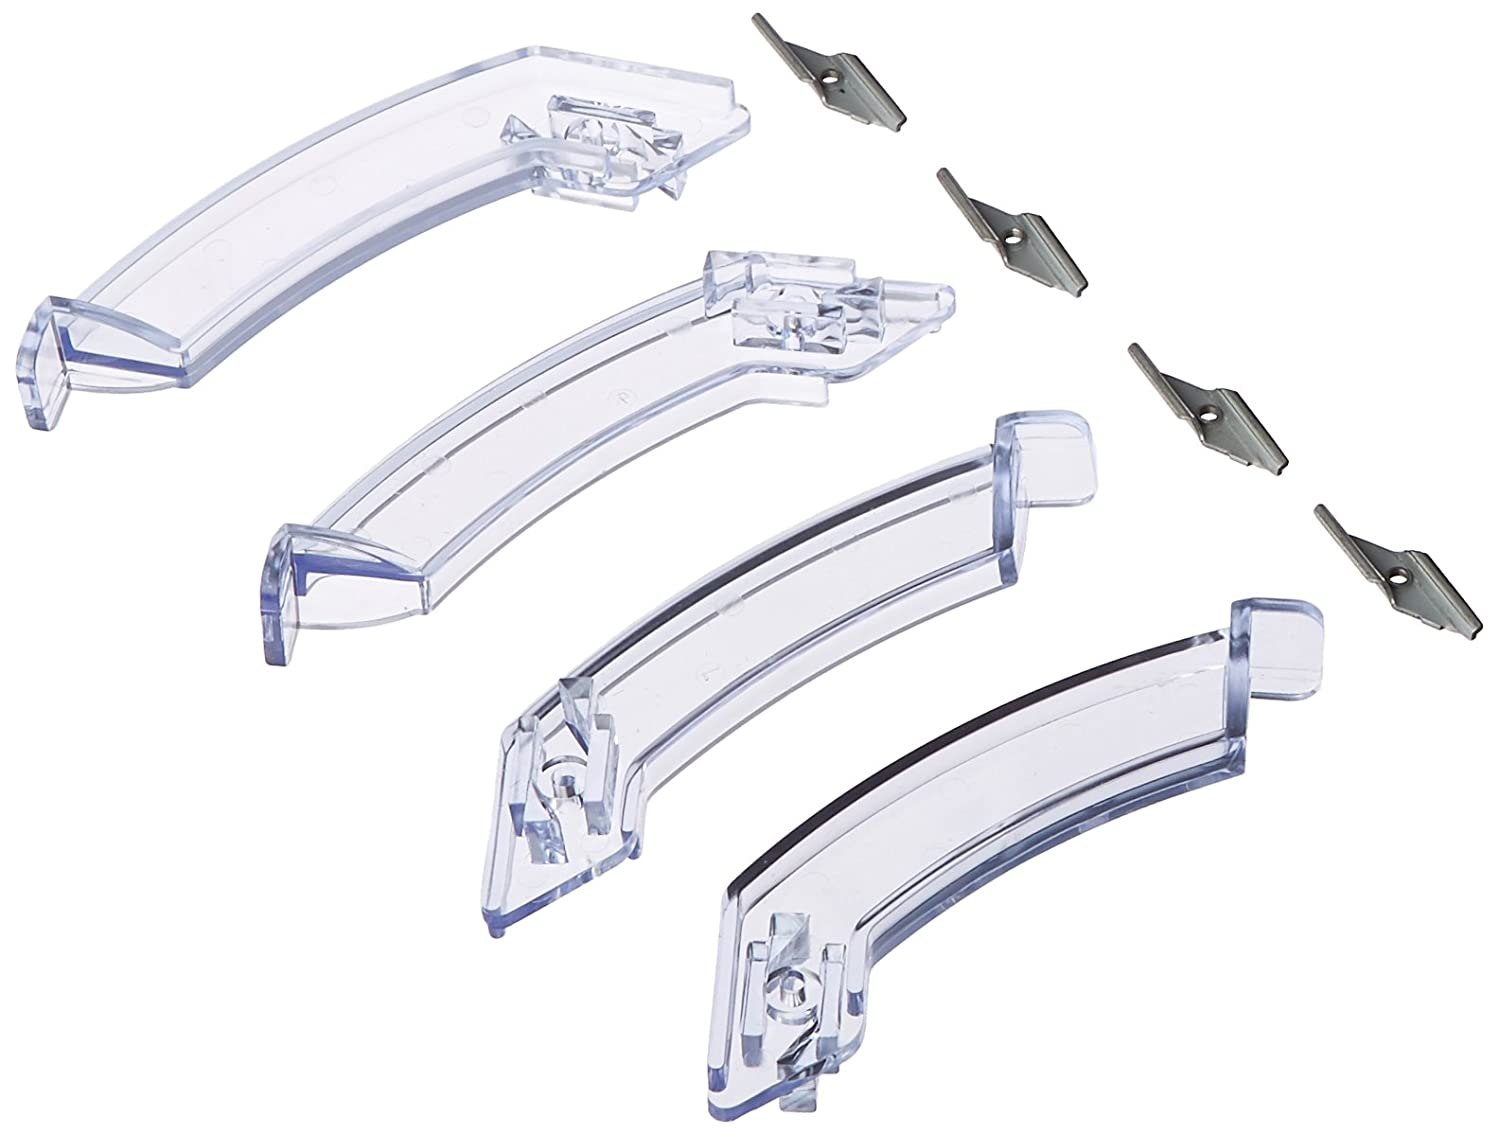 Coralife Aqualight Mounting Legs, Clear